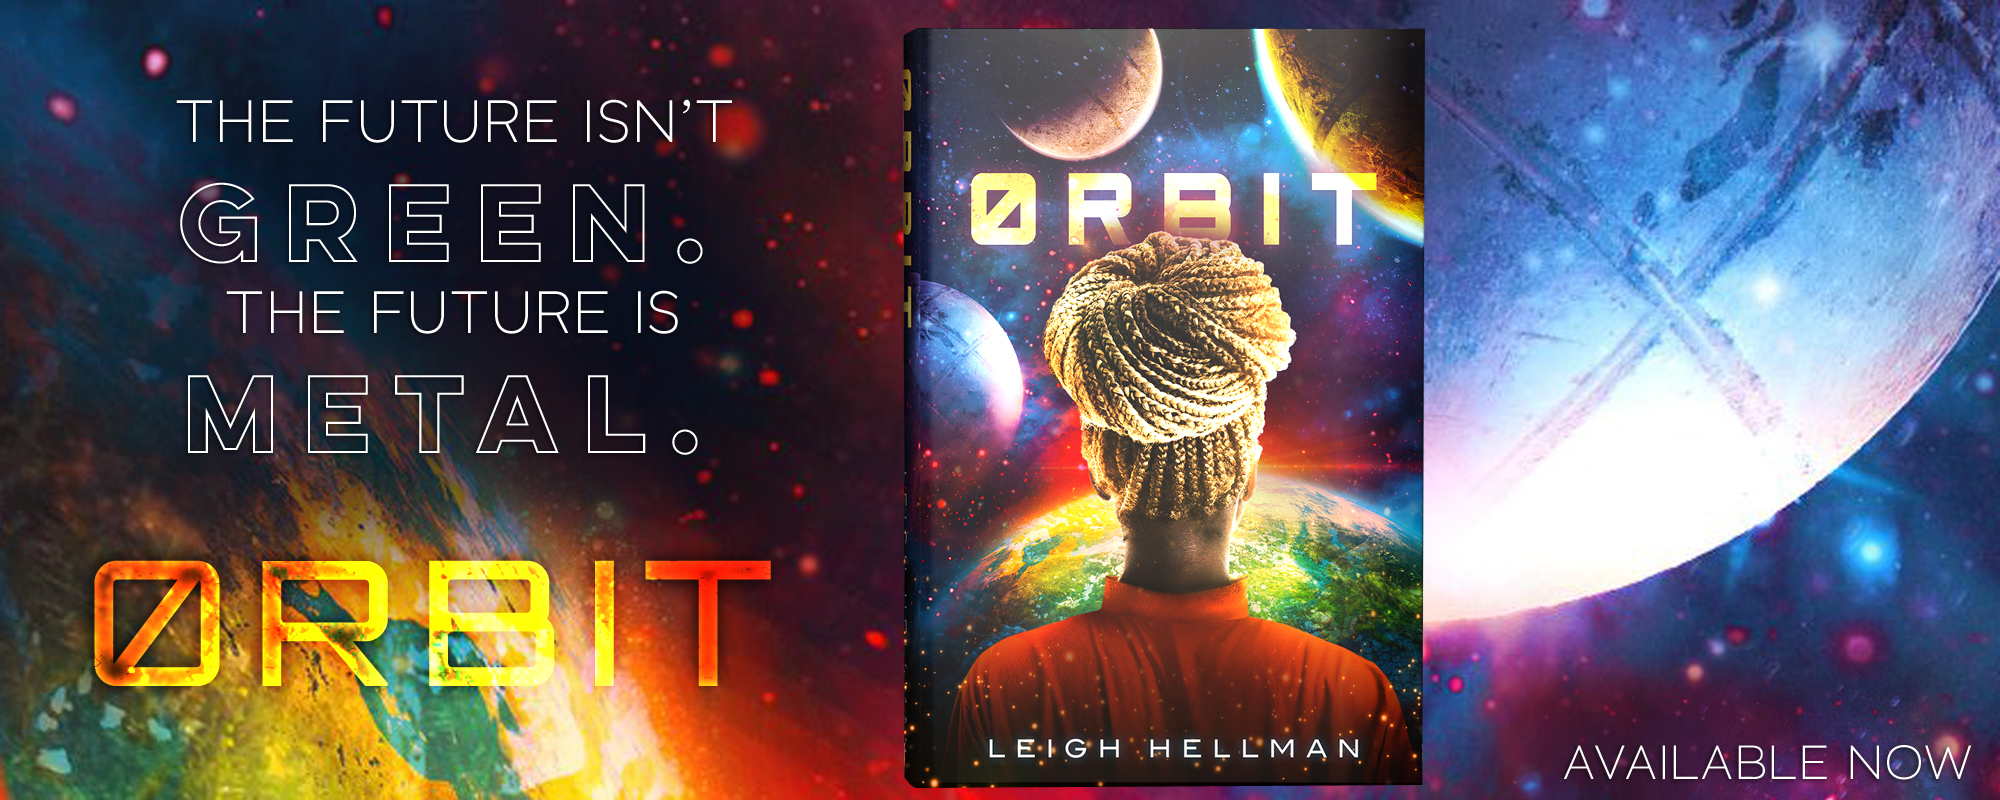 Orbit by Leigh Hellman, available now